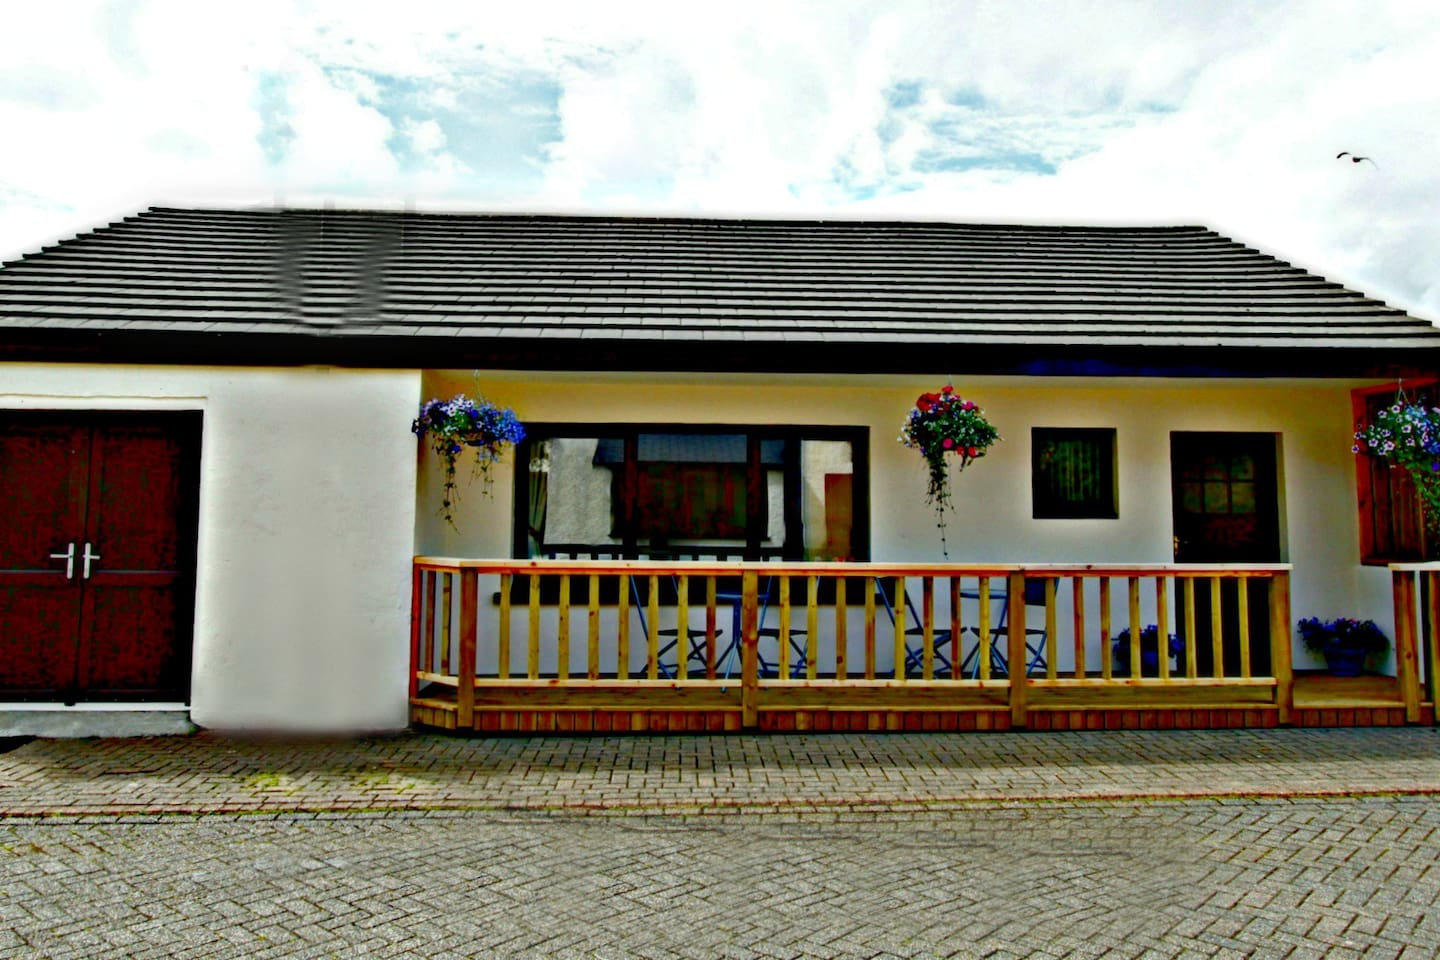 Clachan Bed & Breakfast, opposite The Clachan